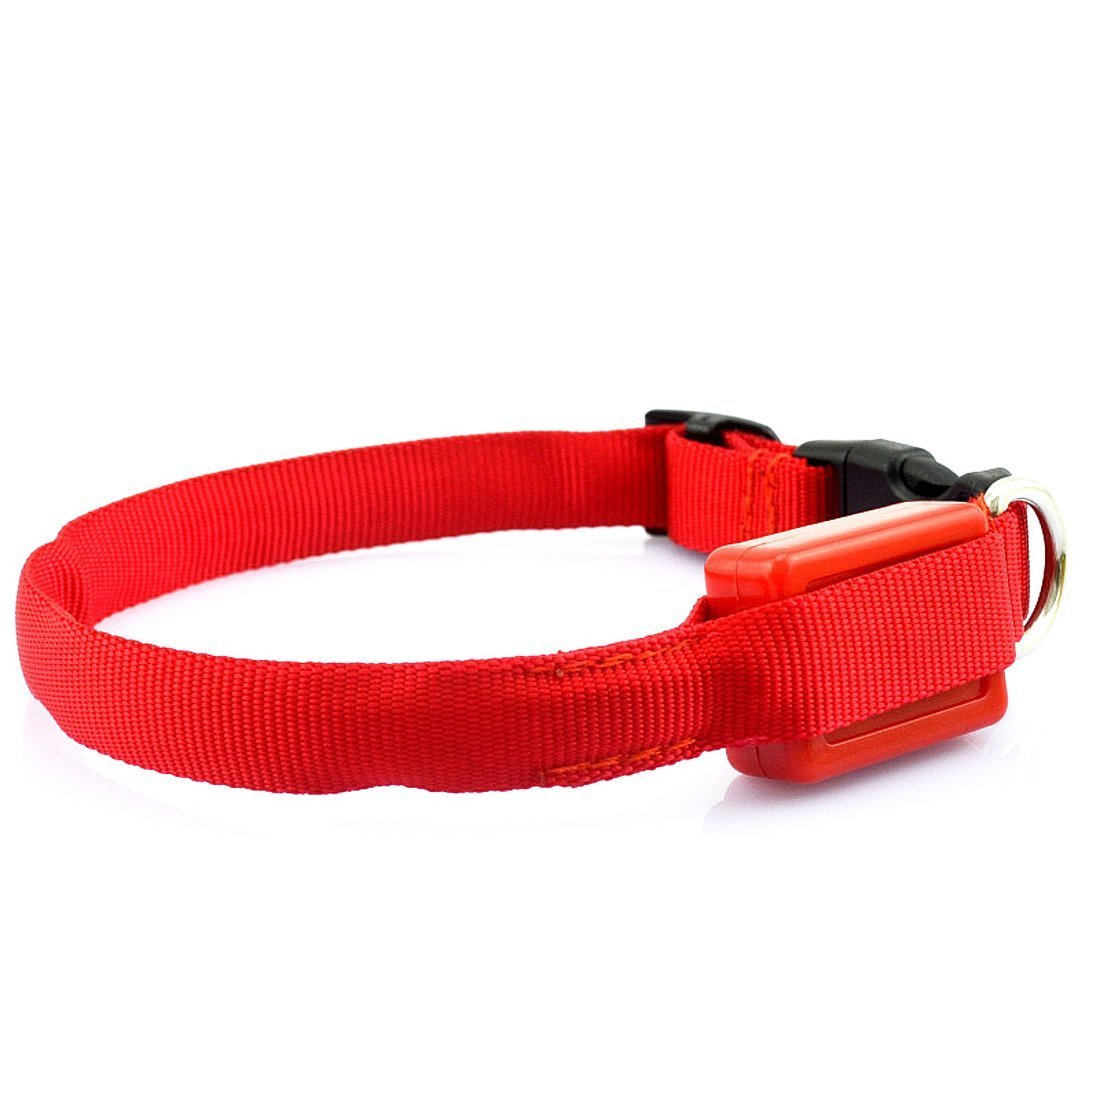 Collier Clignotant LED Taille Réglable Pour Animaux Chien Chat-Rouge Luwu-Store SHOMLU2443